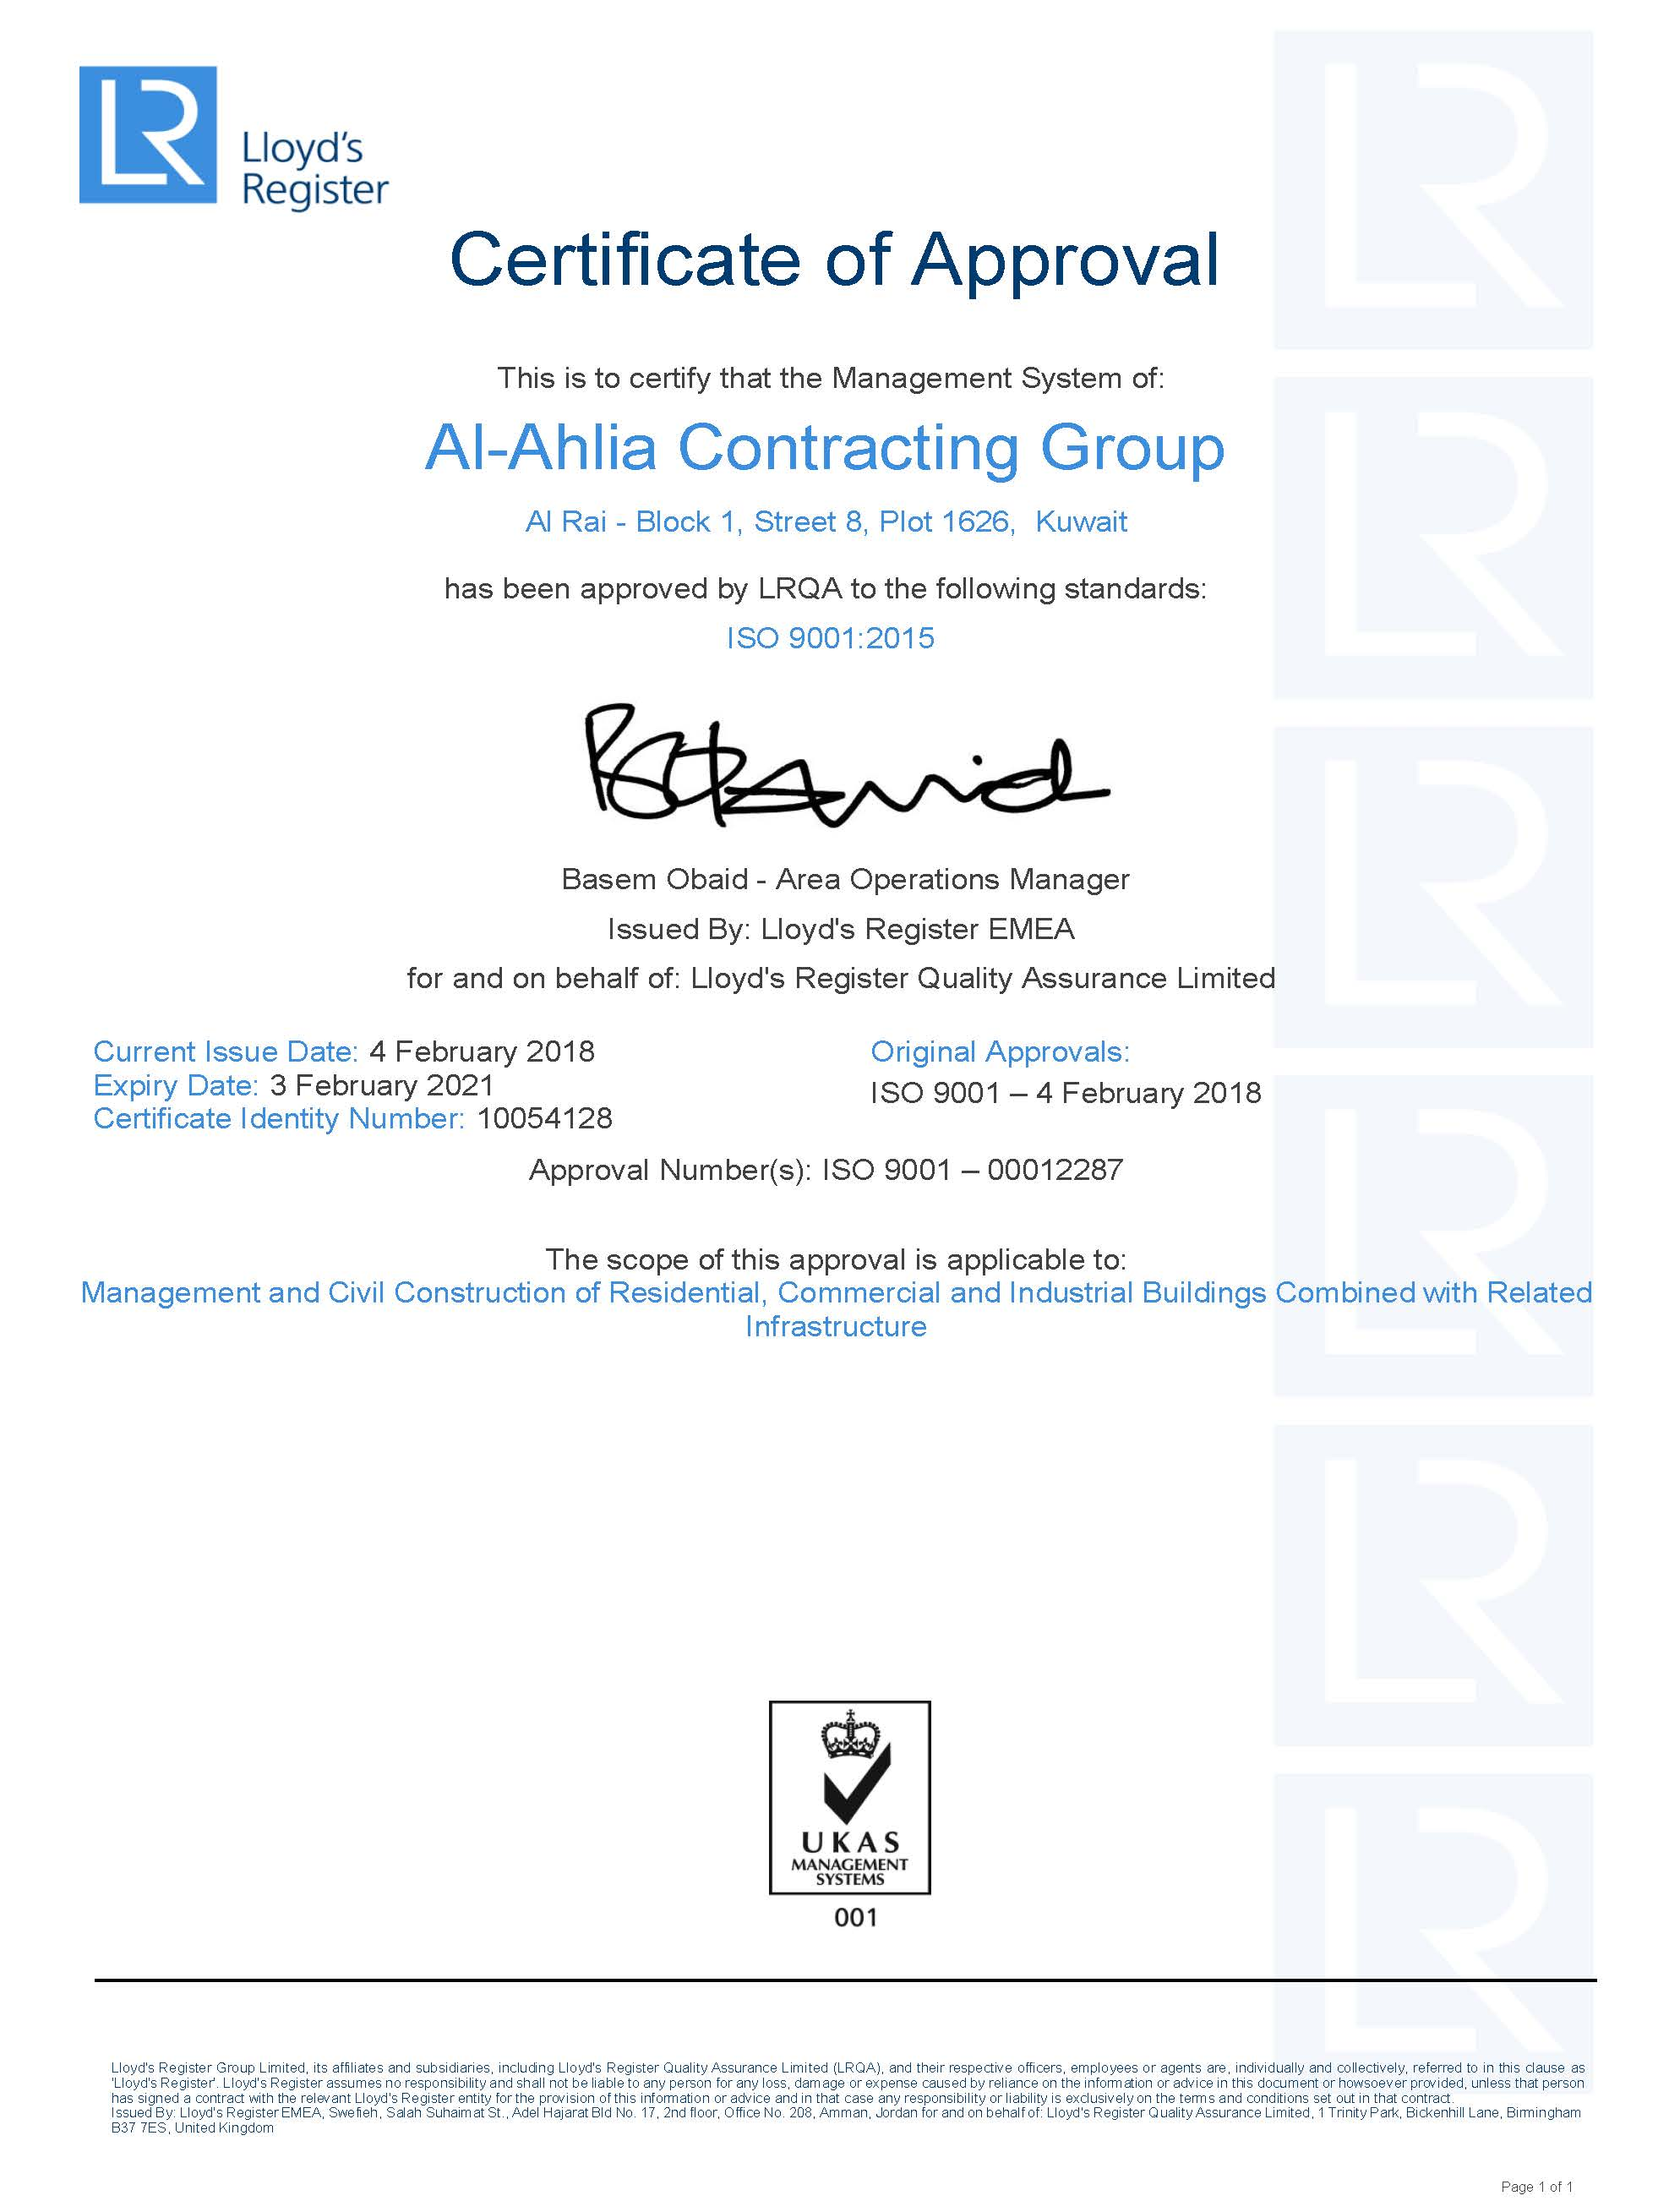 Ahlia Contracting Group | Al Ahlia Contracting Group